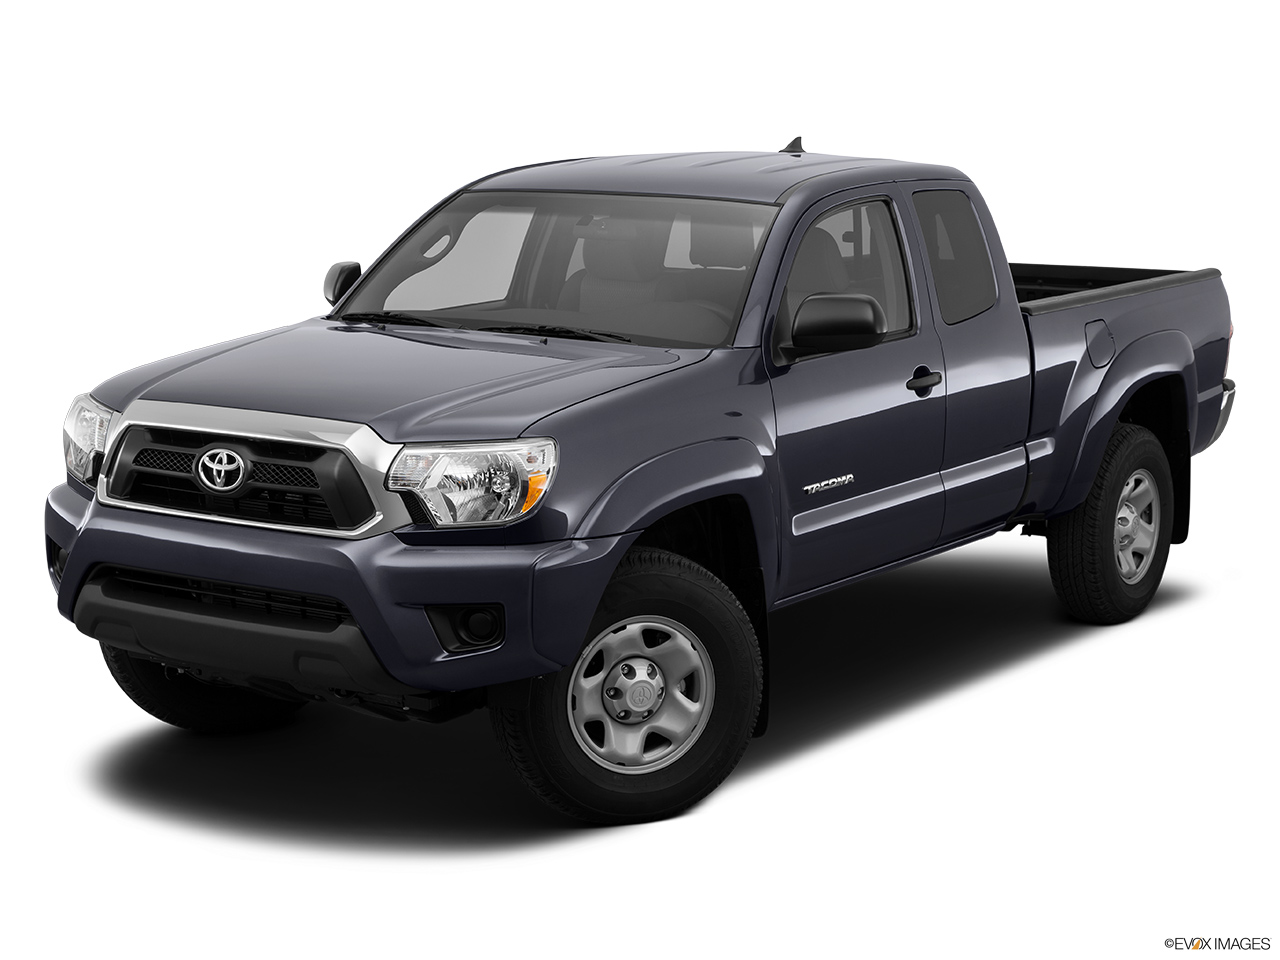 2015 Toyota Tacoma 4WD Access Cab V6 MT - Front angle view